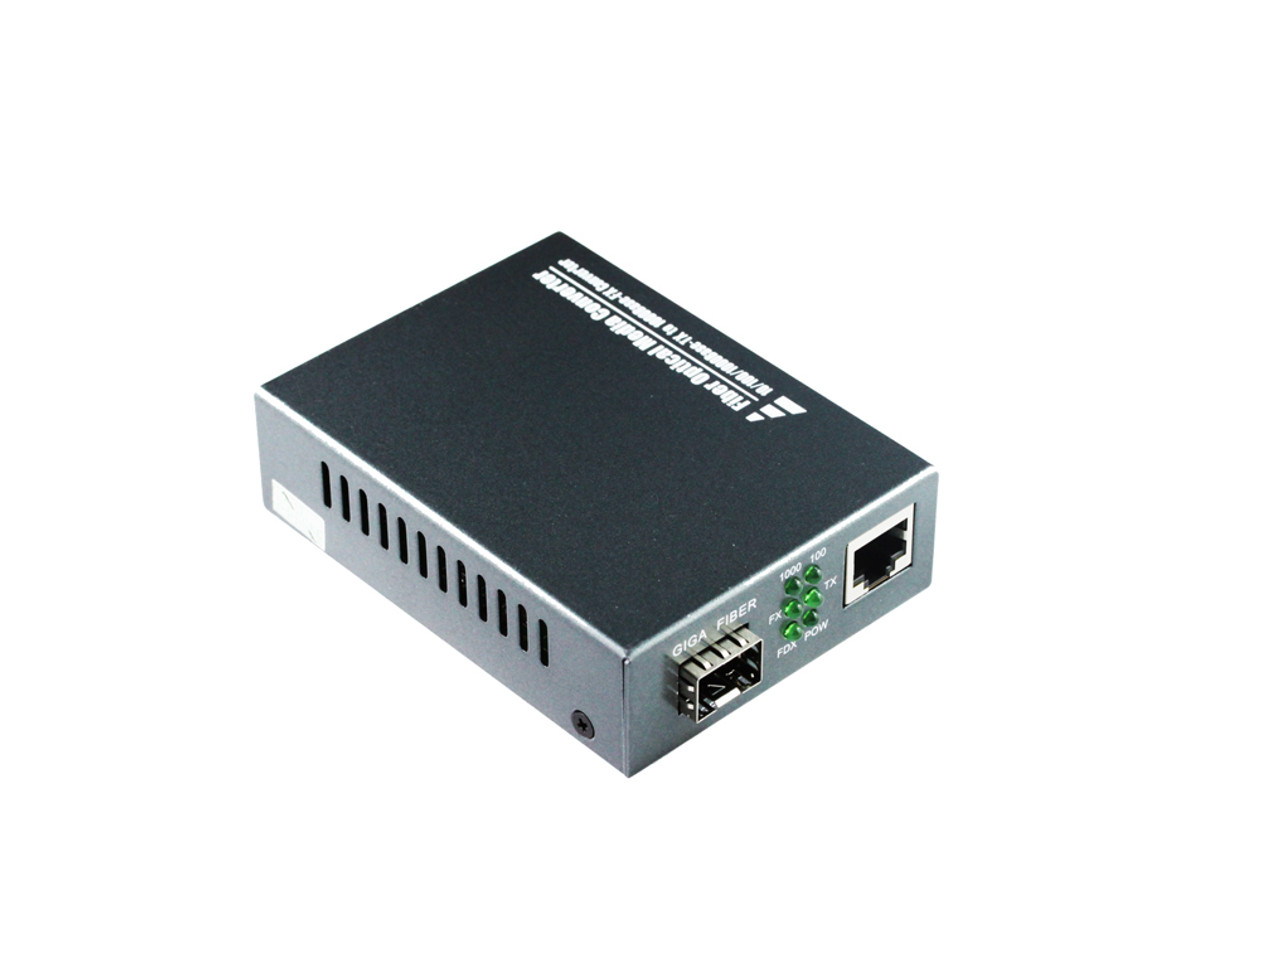 Product image for 10/100/1000M Multimode Media Converter With SFP Port | CX Computer Superstore